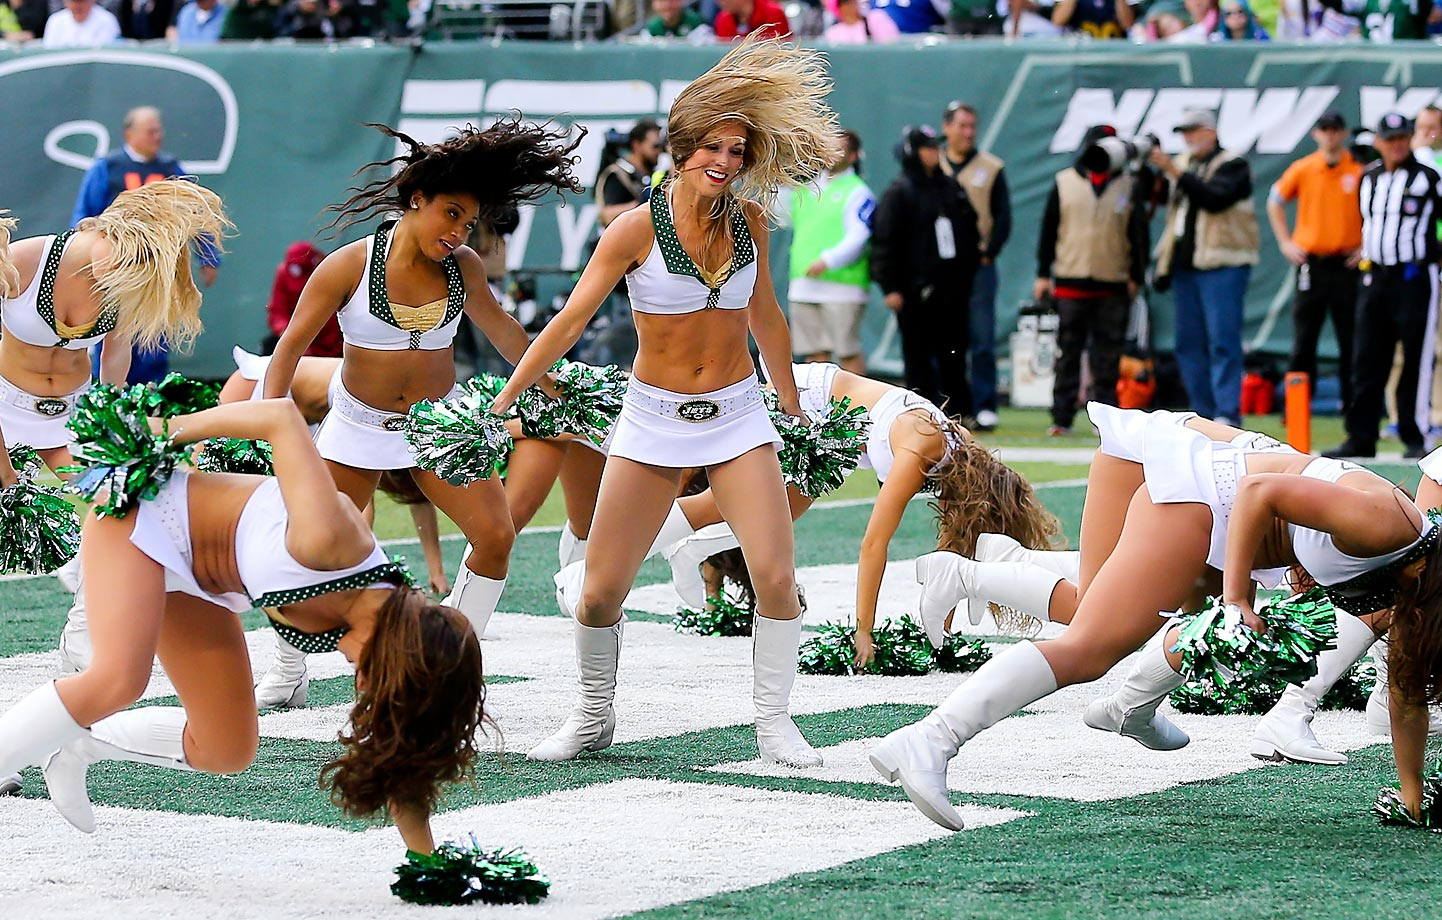 New York Jets Flight Crew cheerleaders seem to be losing their footing along with the Jets